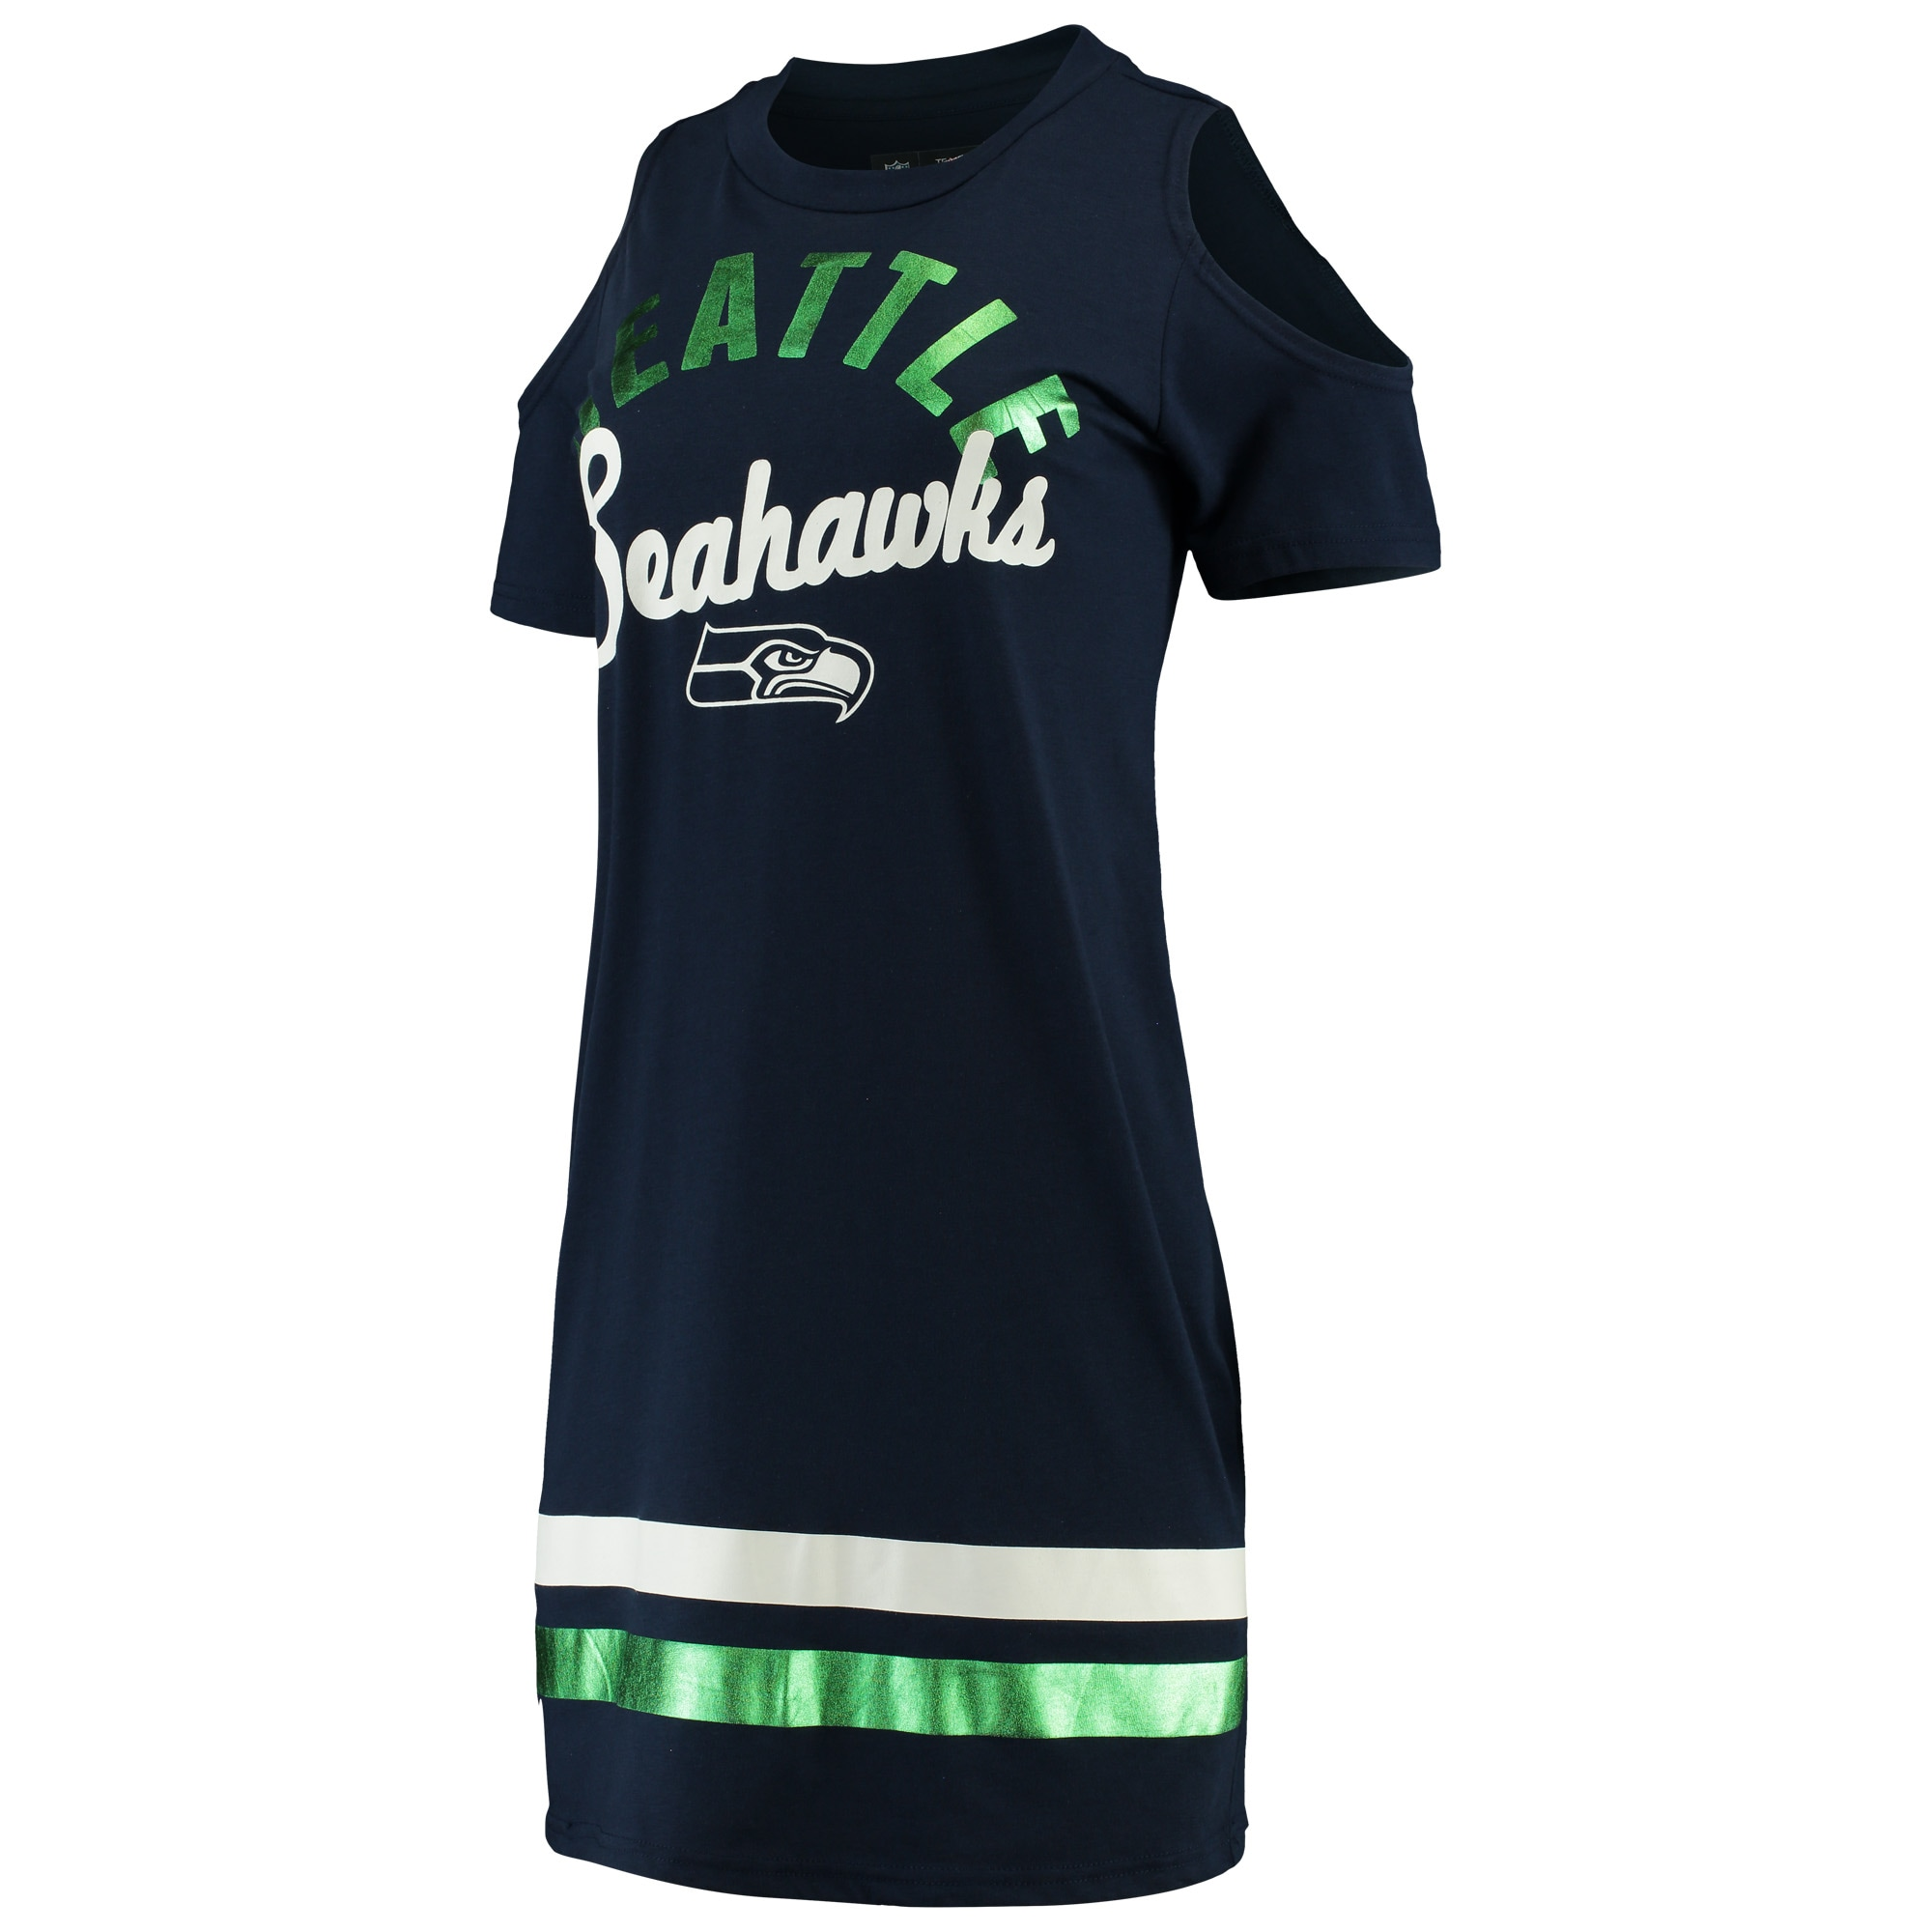 Seattle Seahawks G-III 4Her by Carl Banks Women's Go Get Em Tri-Blend Cold Shoulder Mini-Dress - College Navy